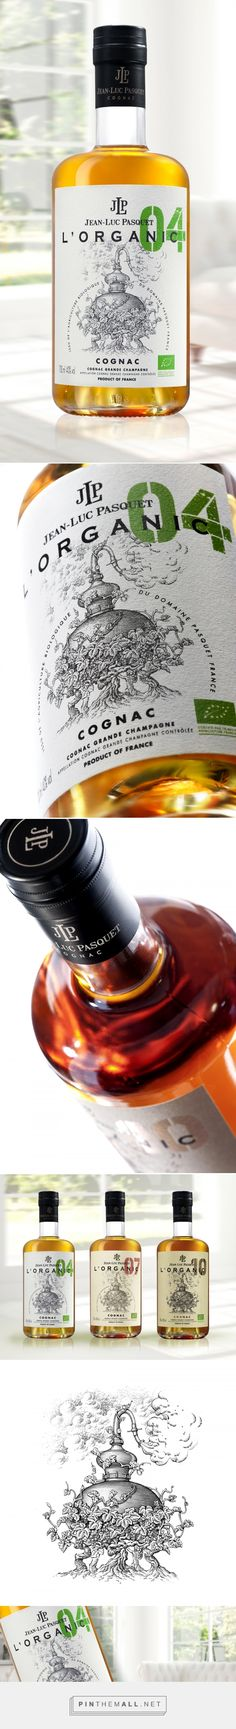 Cognac Jean-Luc Pasquet - L'Organic - Packaging of the World - Creative Package Design Gallery - http://www.packagingoftheworld.com/2017/09/cognac-jean-luc-pasquet-lorganic.html